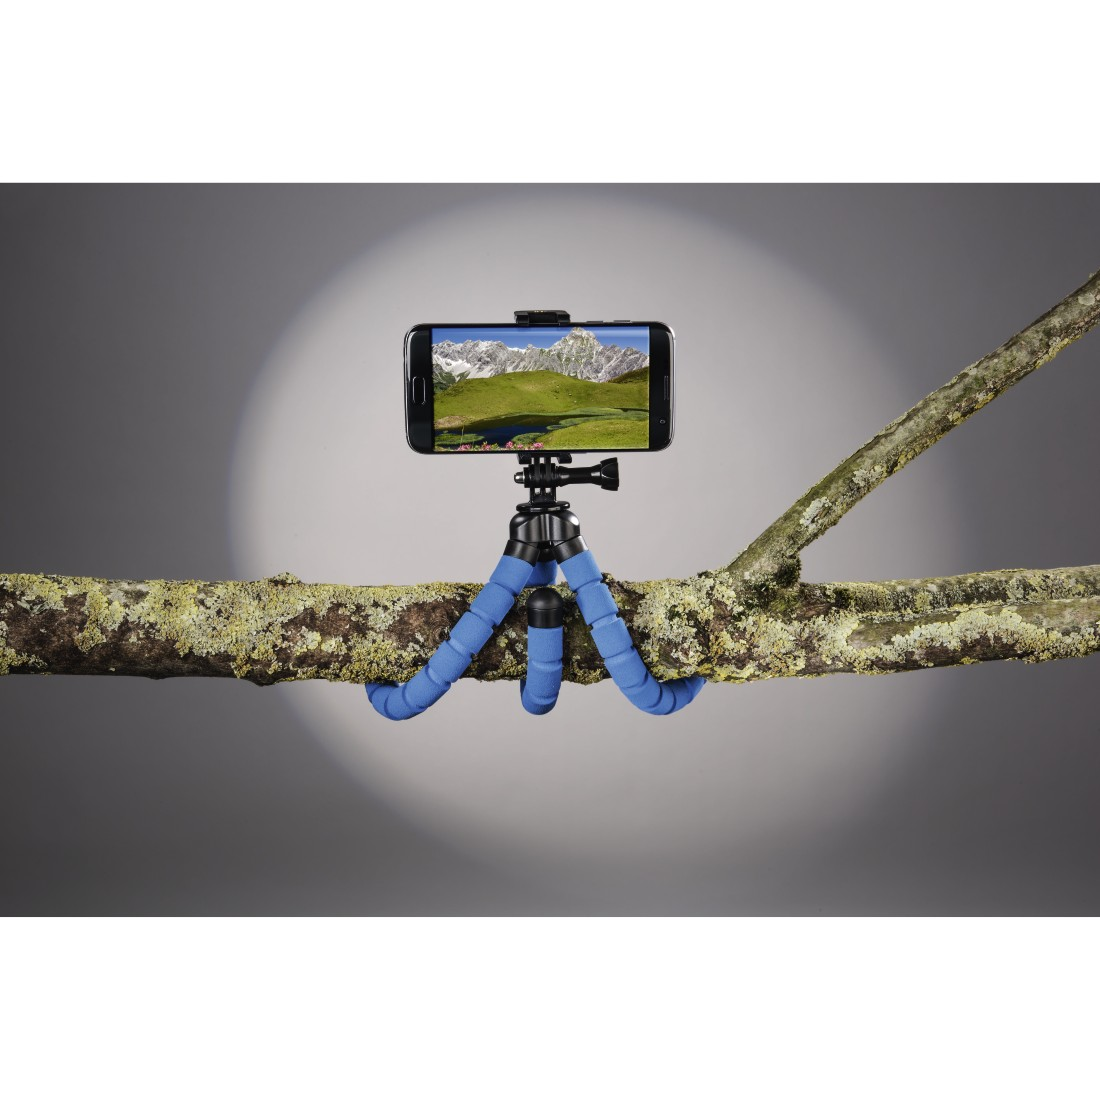 "awx2 High-Res Appliance 2 - Hama, ""Flex"" Tripod for Smartphone and GoPro, 26 cm, blue"